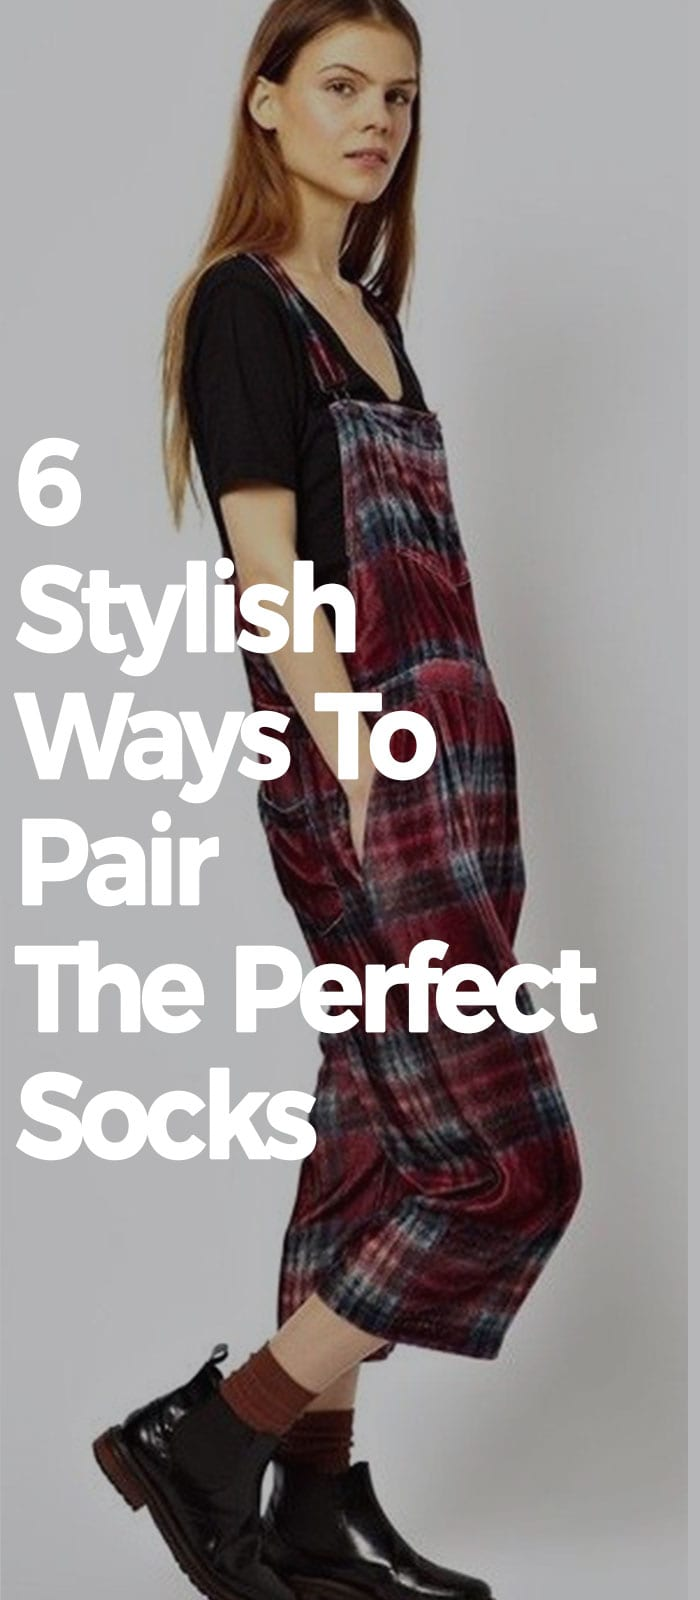 6 Stylish Ways To Pair The Perfect Socks!